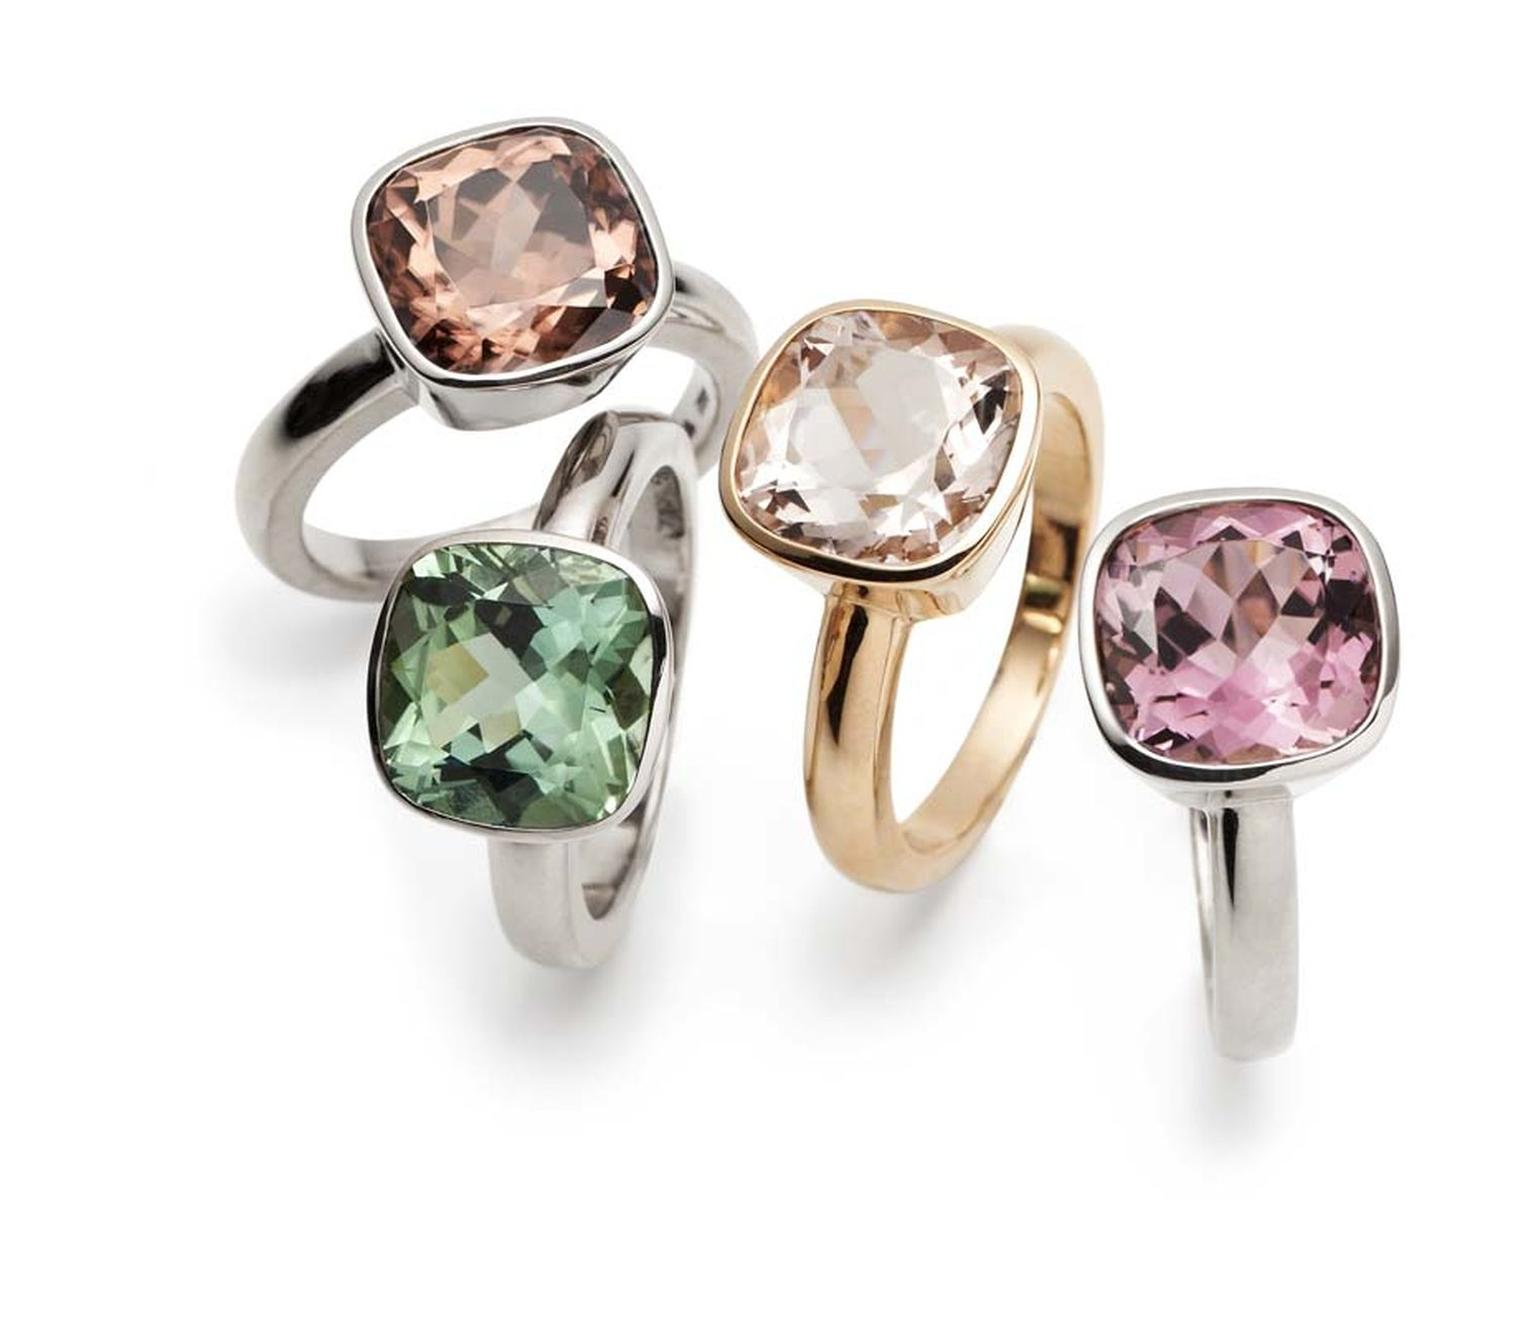 CADA Roma rings in white gold with zircon, white gold with green tourmaline, rose gold with morganite and white gold with pink tourmaline.